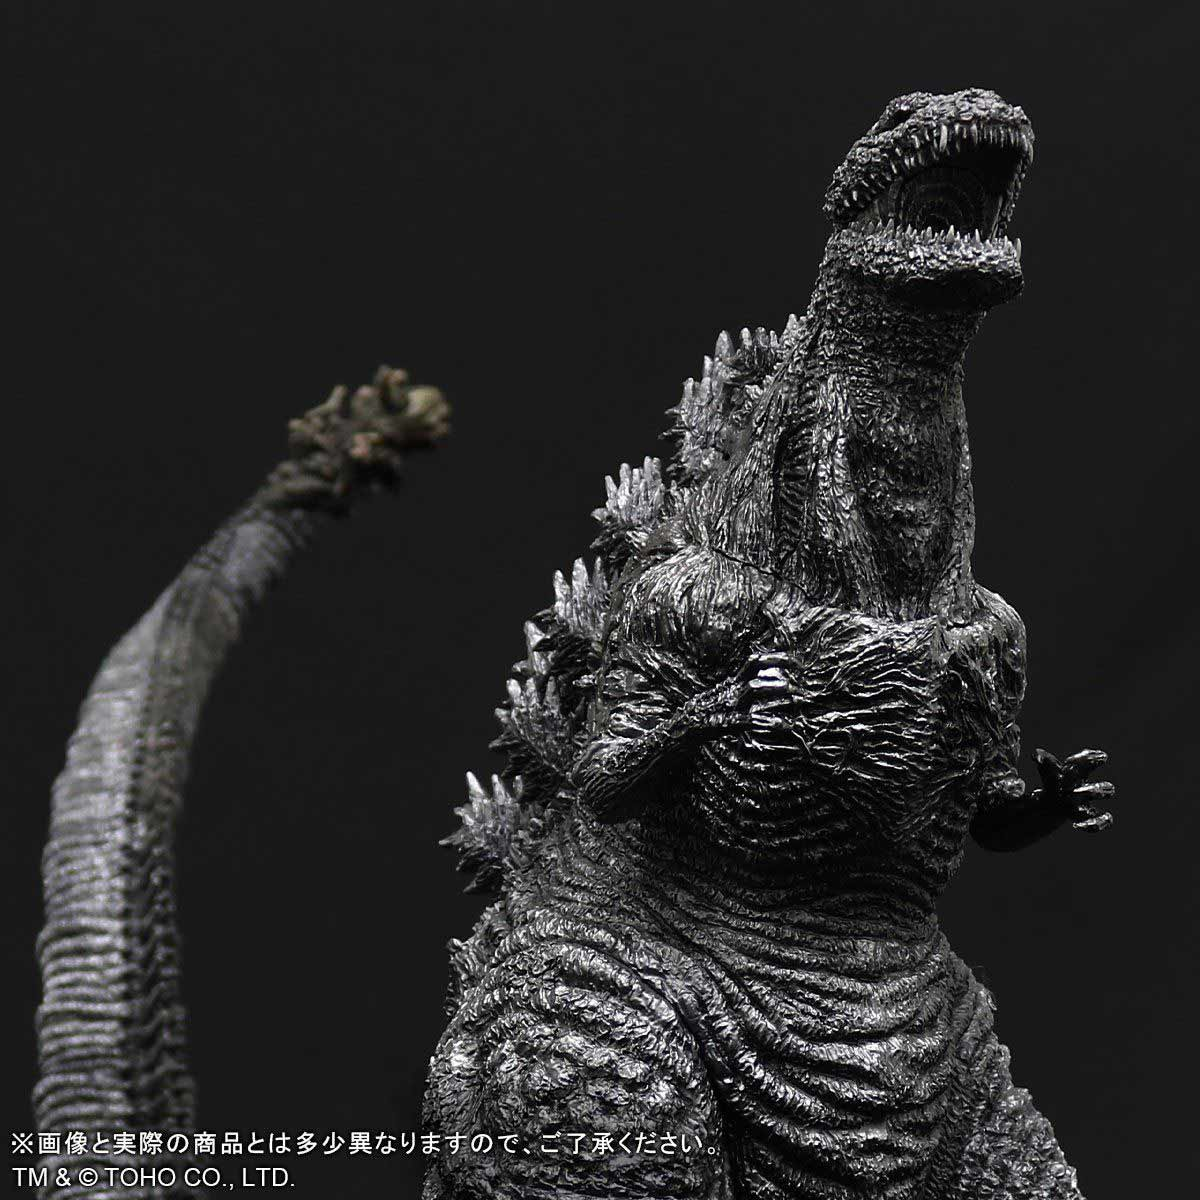 Medium shot of the Large Monster Series Godzilla 2016 Frozen Version vinyl figure by X-Plus.